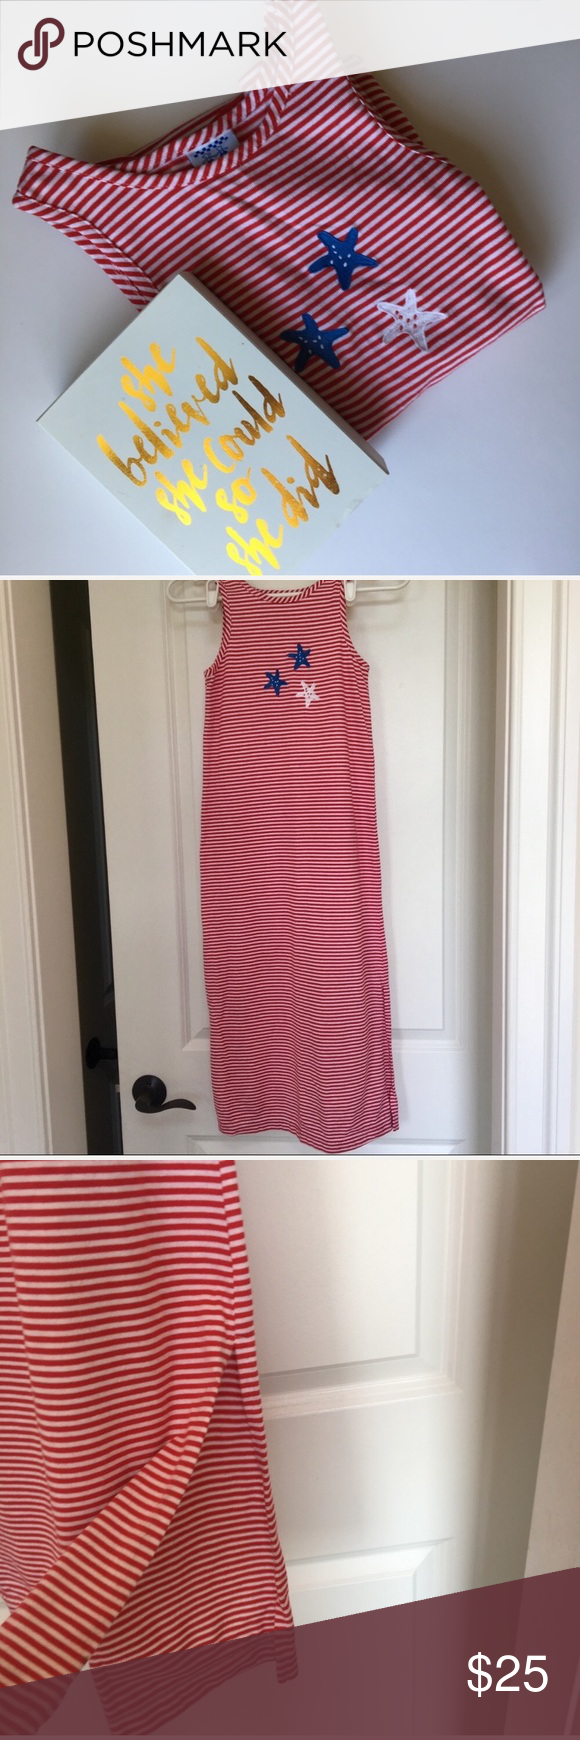 Stars And Stripes Maxi Dress Perfect For 4th Of July Sides Have Slits Euc Size M 7 8 Red White Blue Stars An Striped Maxi Dresses Striped Maxi Stripes [ 1740 x 580 Pixel ]